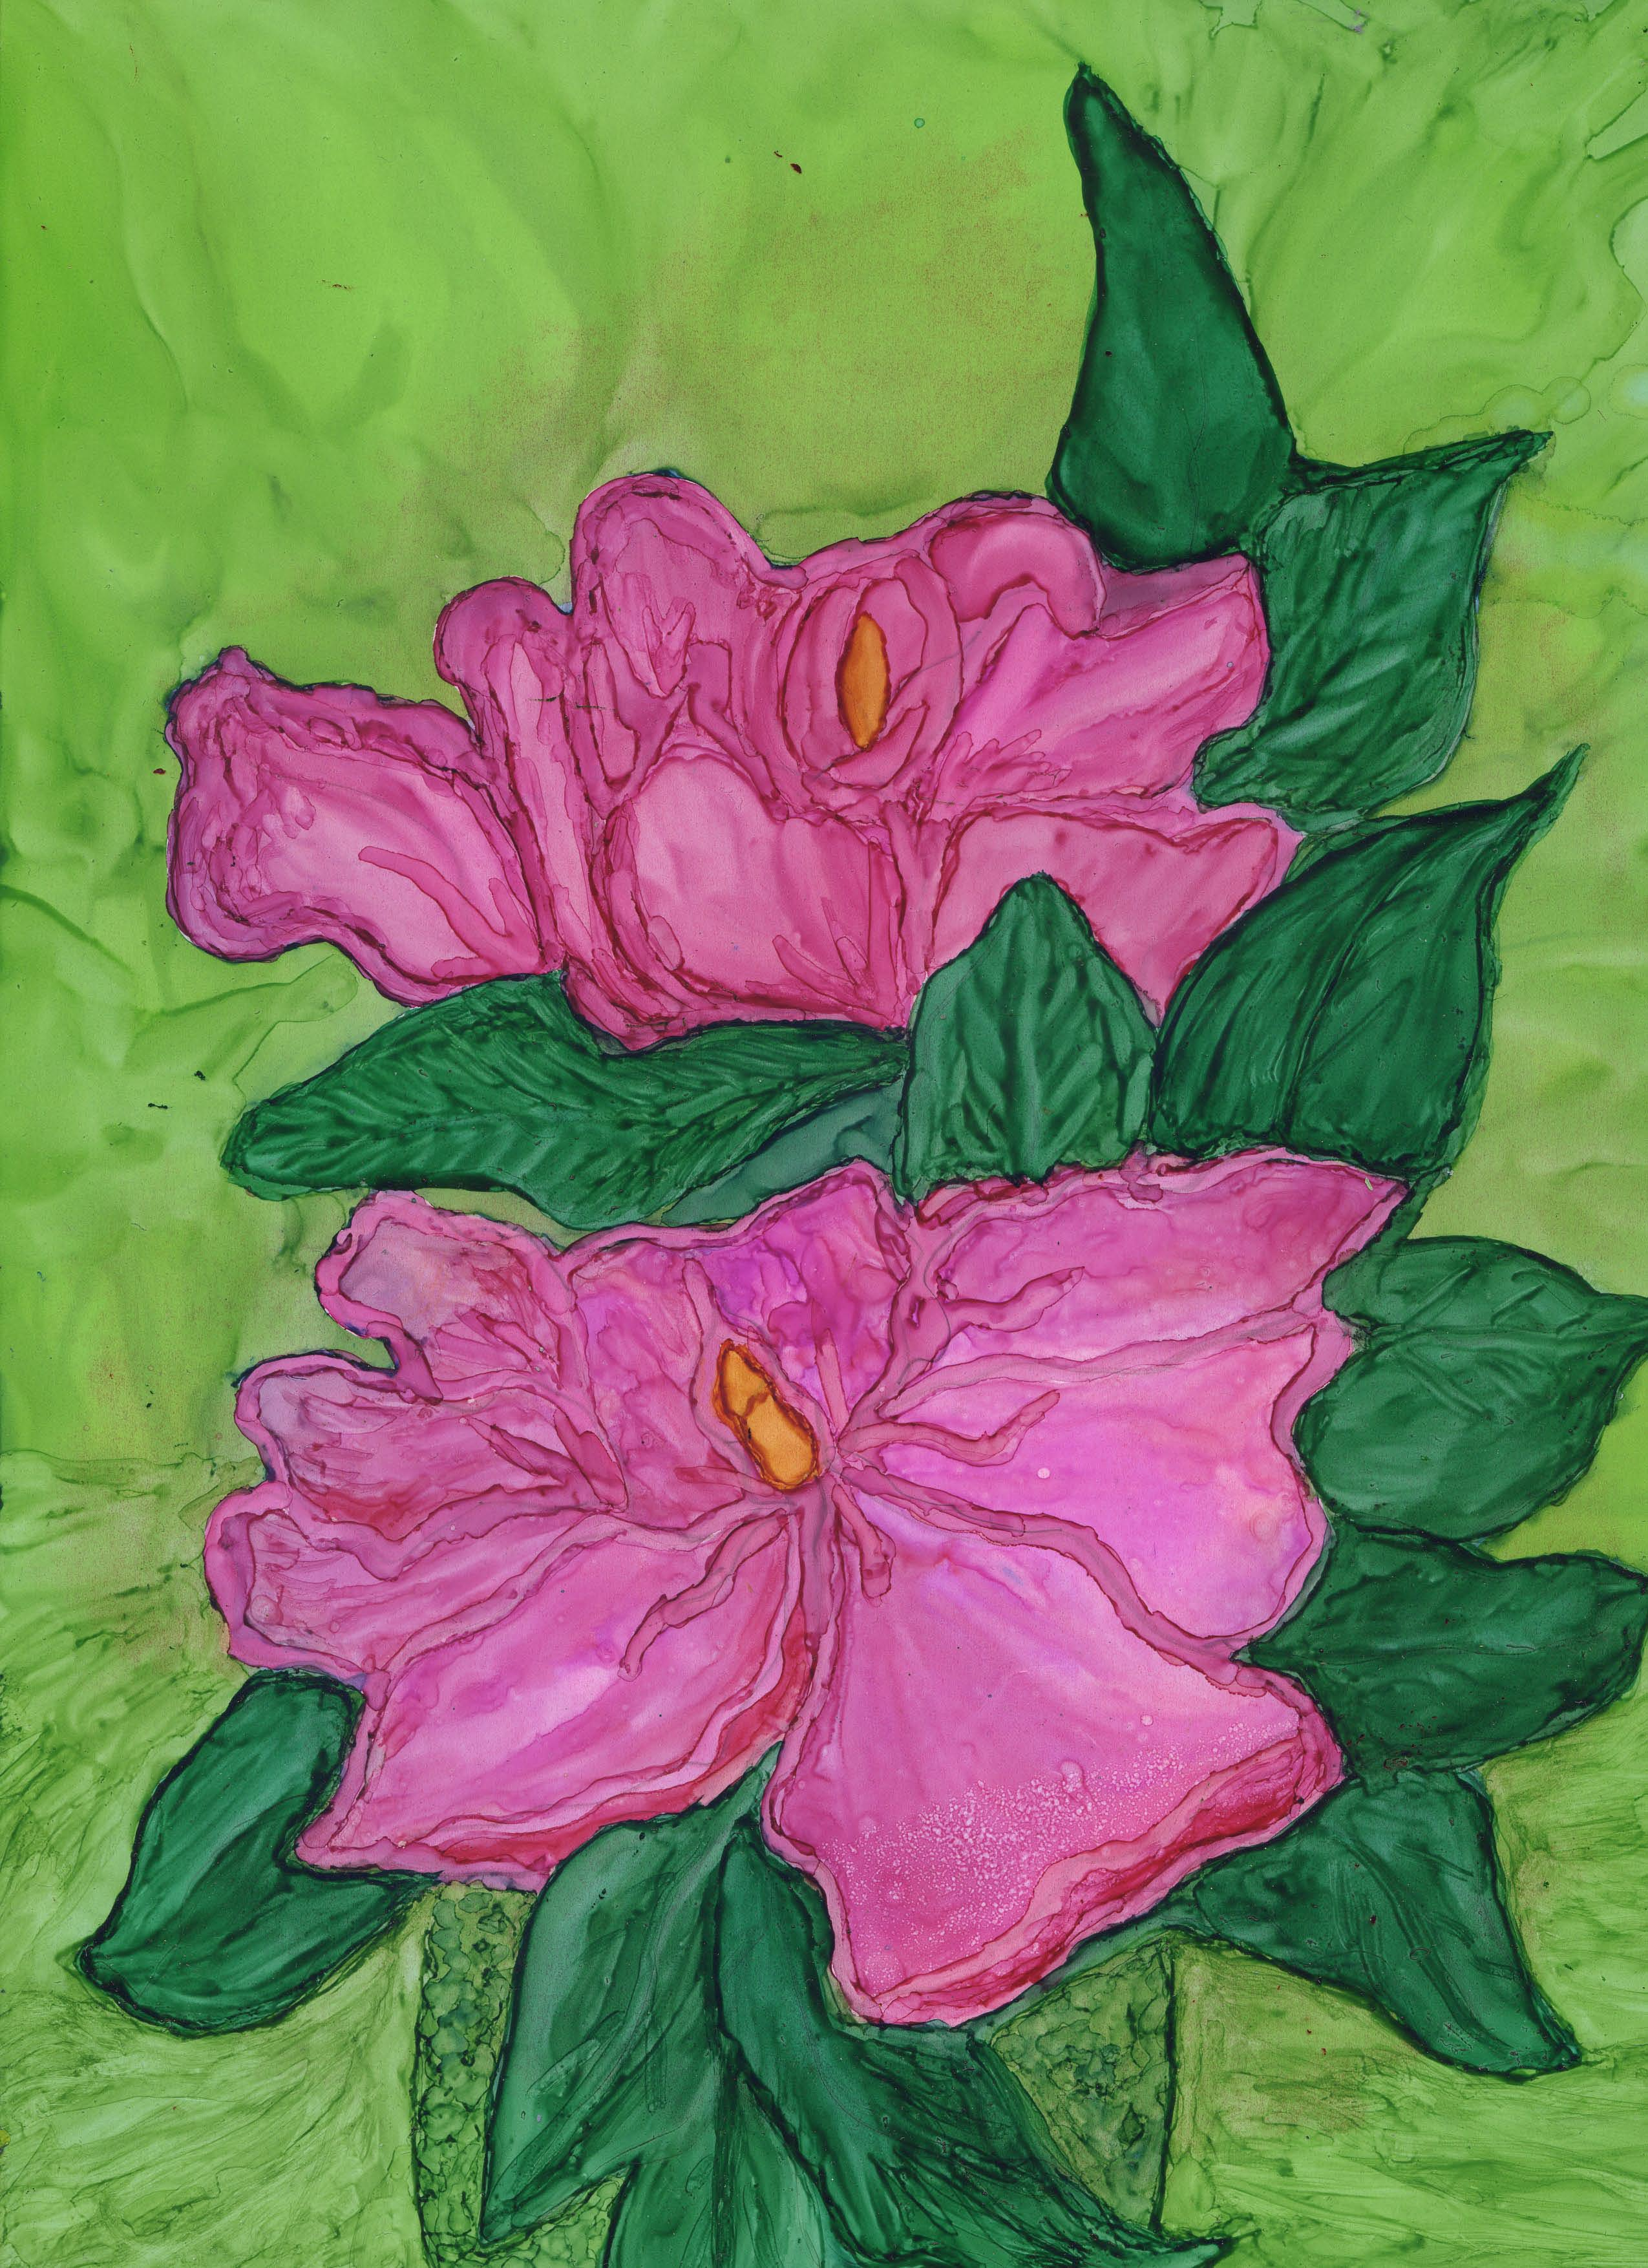 Magnolias in Pink - Alcohol Ink 9 X 12 - $140